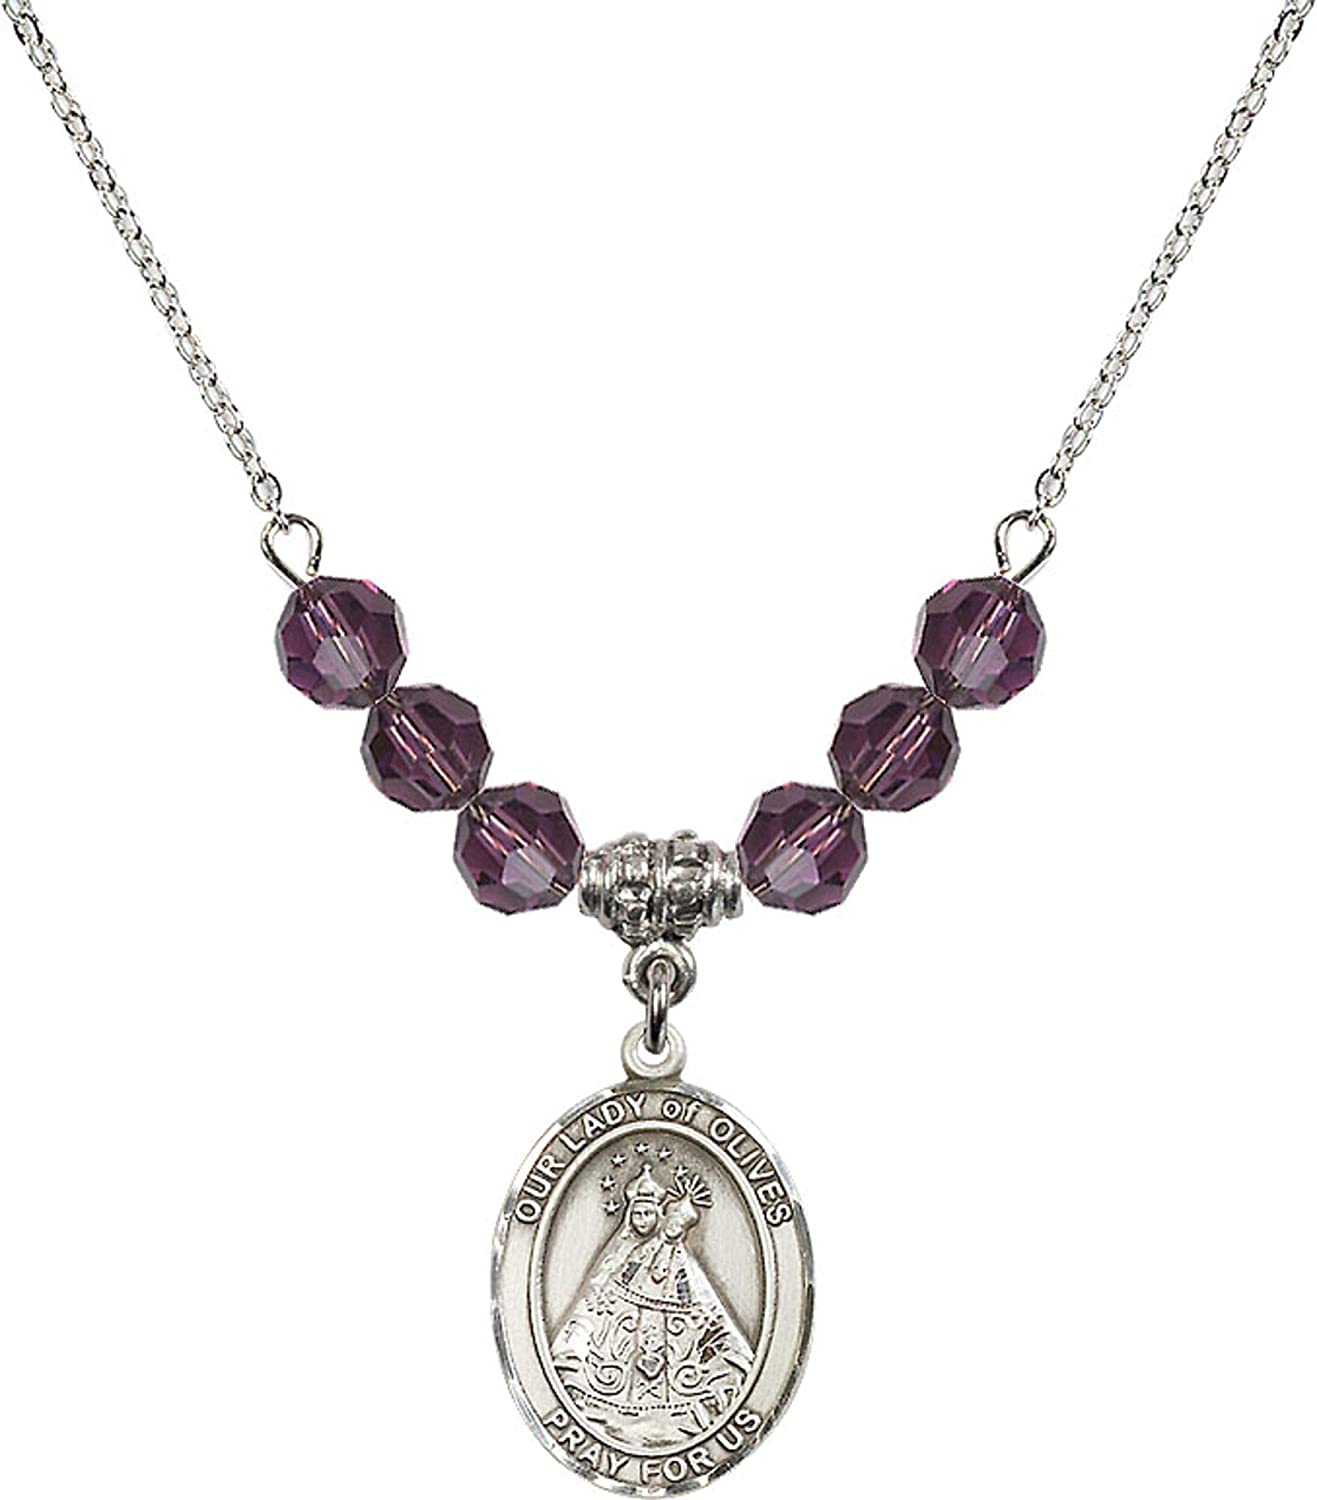 Bonyak Jewelry 18 Inch Rhodium Plated Necklace w// 6mm Purple February Birth Month Stone Beads and Our Lady of Olives Charm